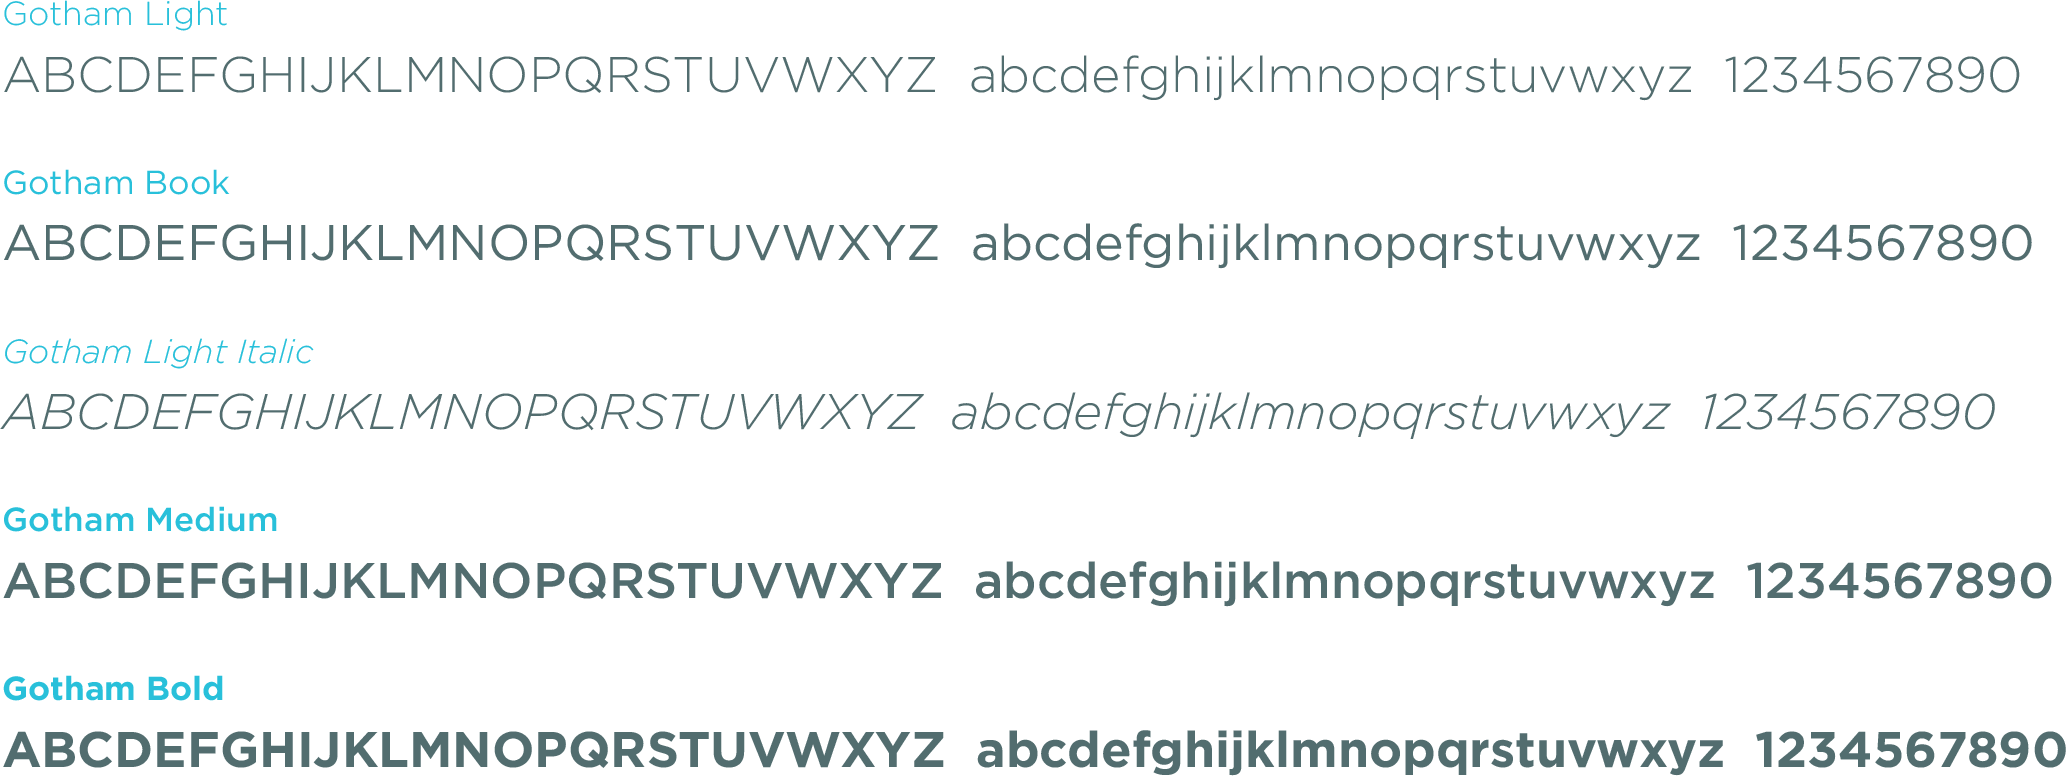 Fonts for print and examples of weight